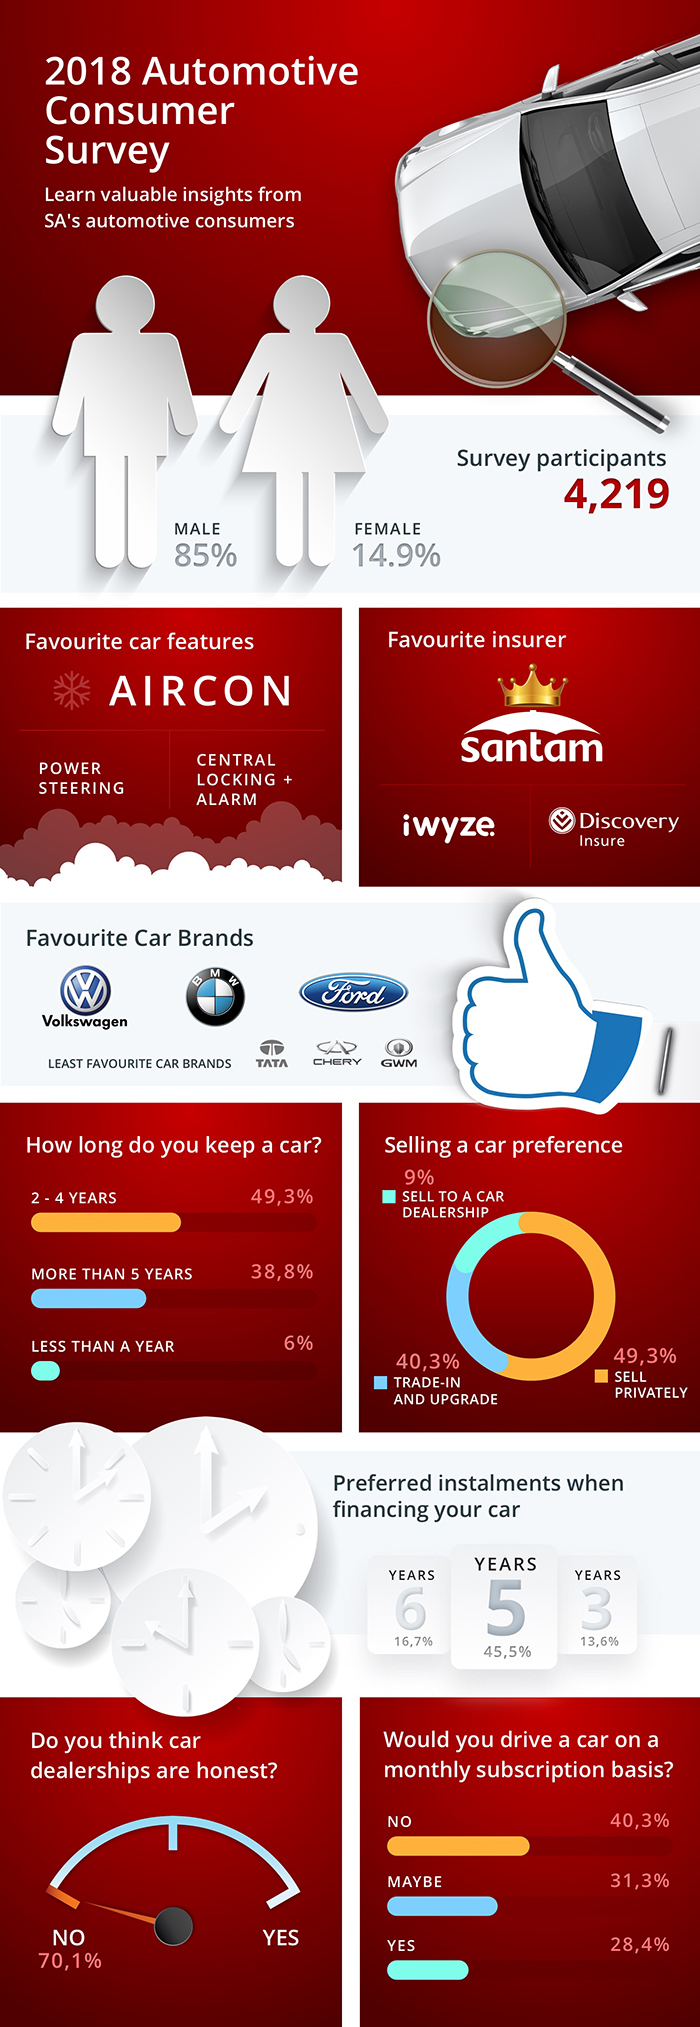 2018 Automotive Consumer Survey Infographic